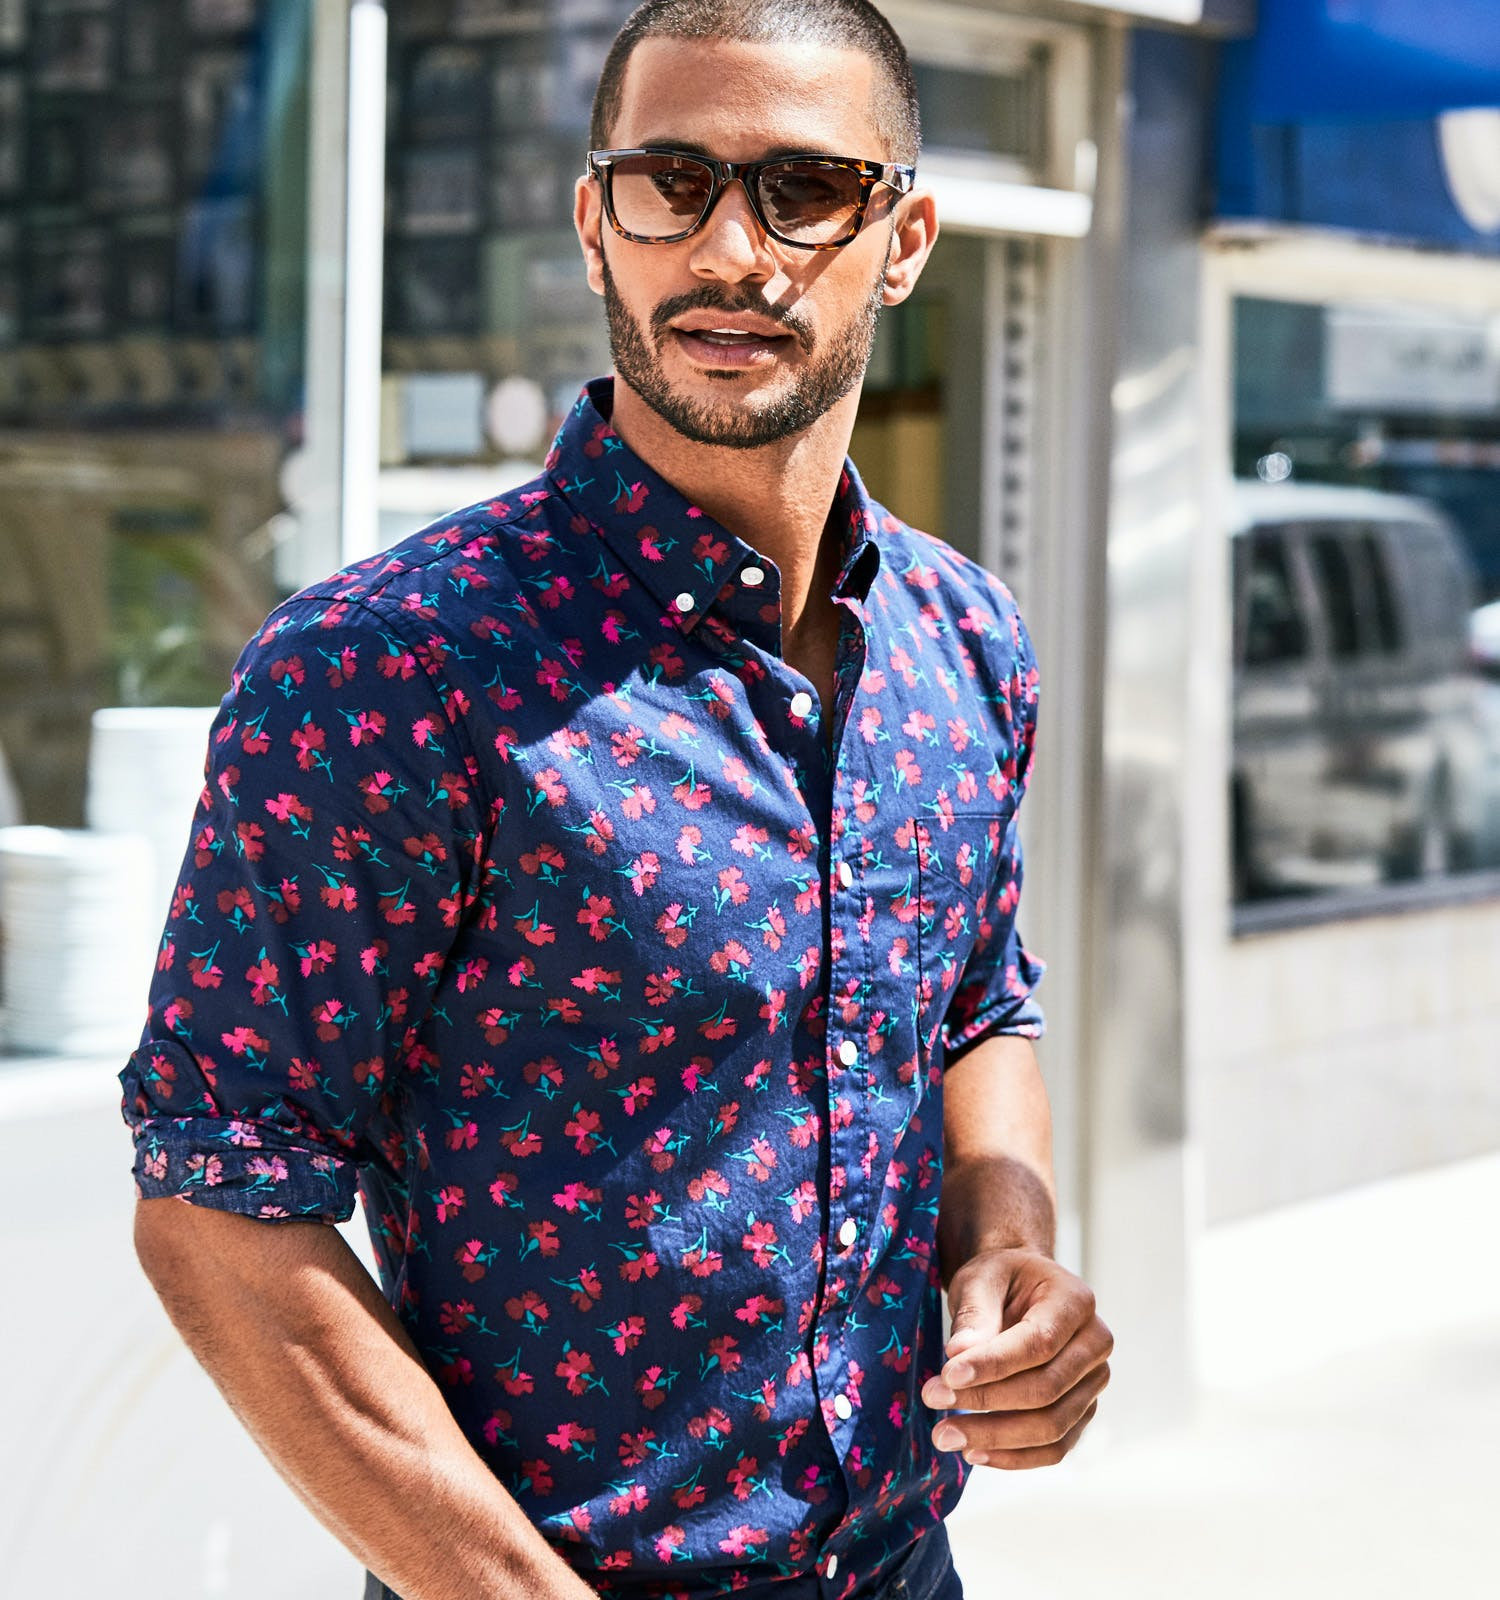 Photo of Man in Floral Shirt